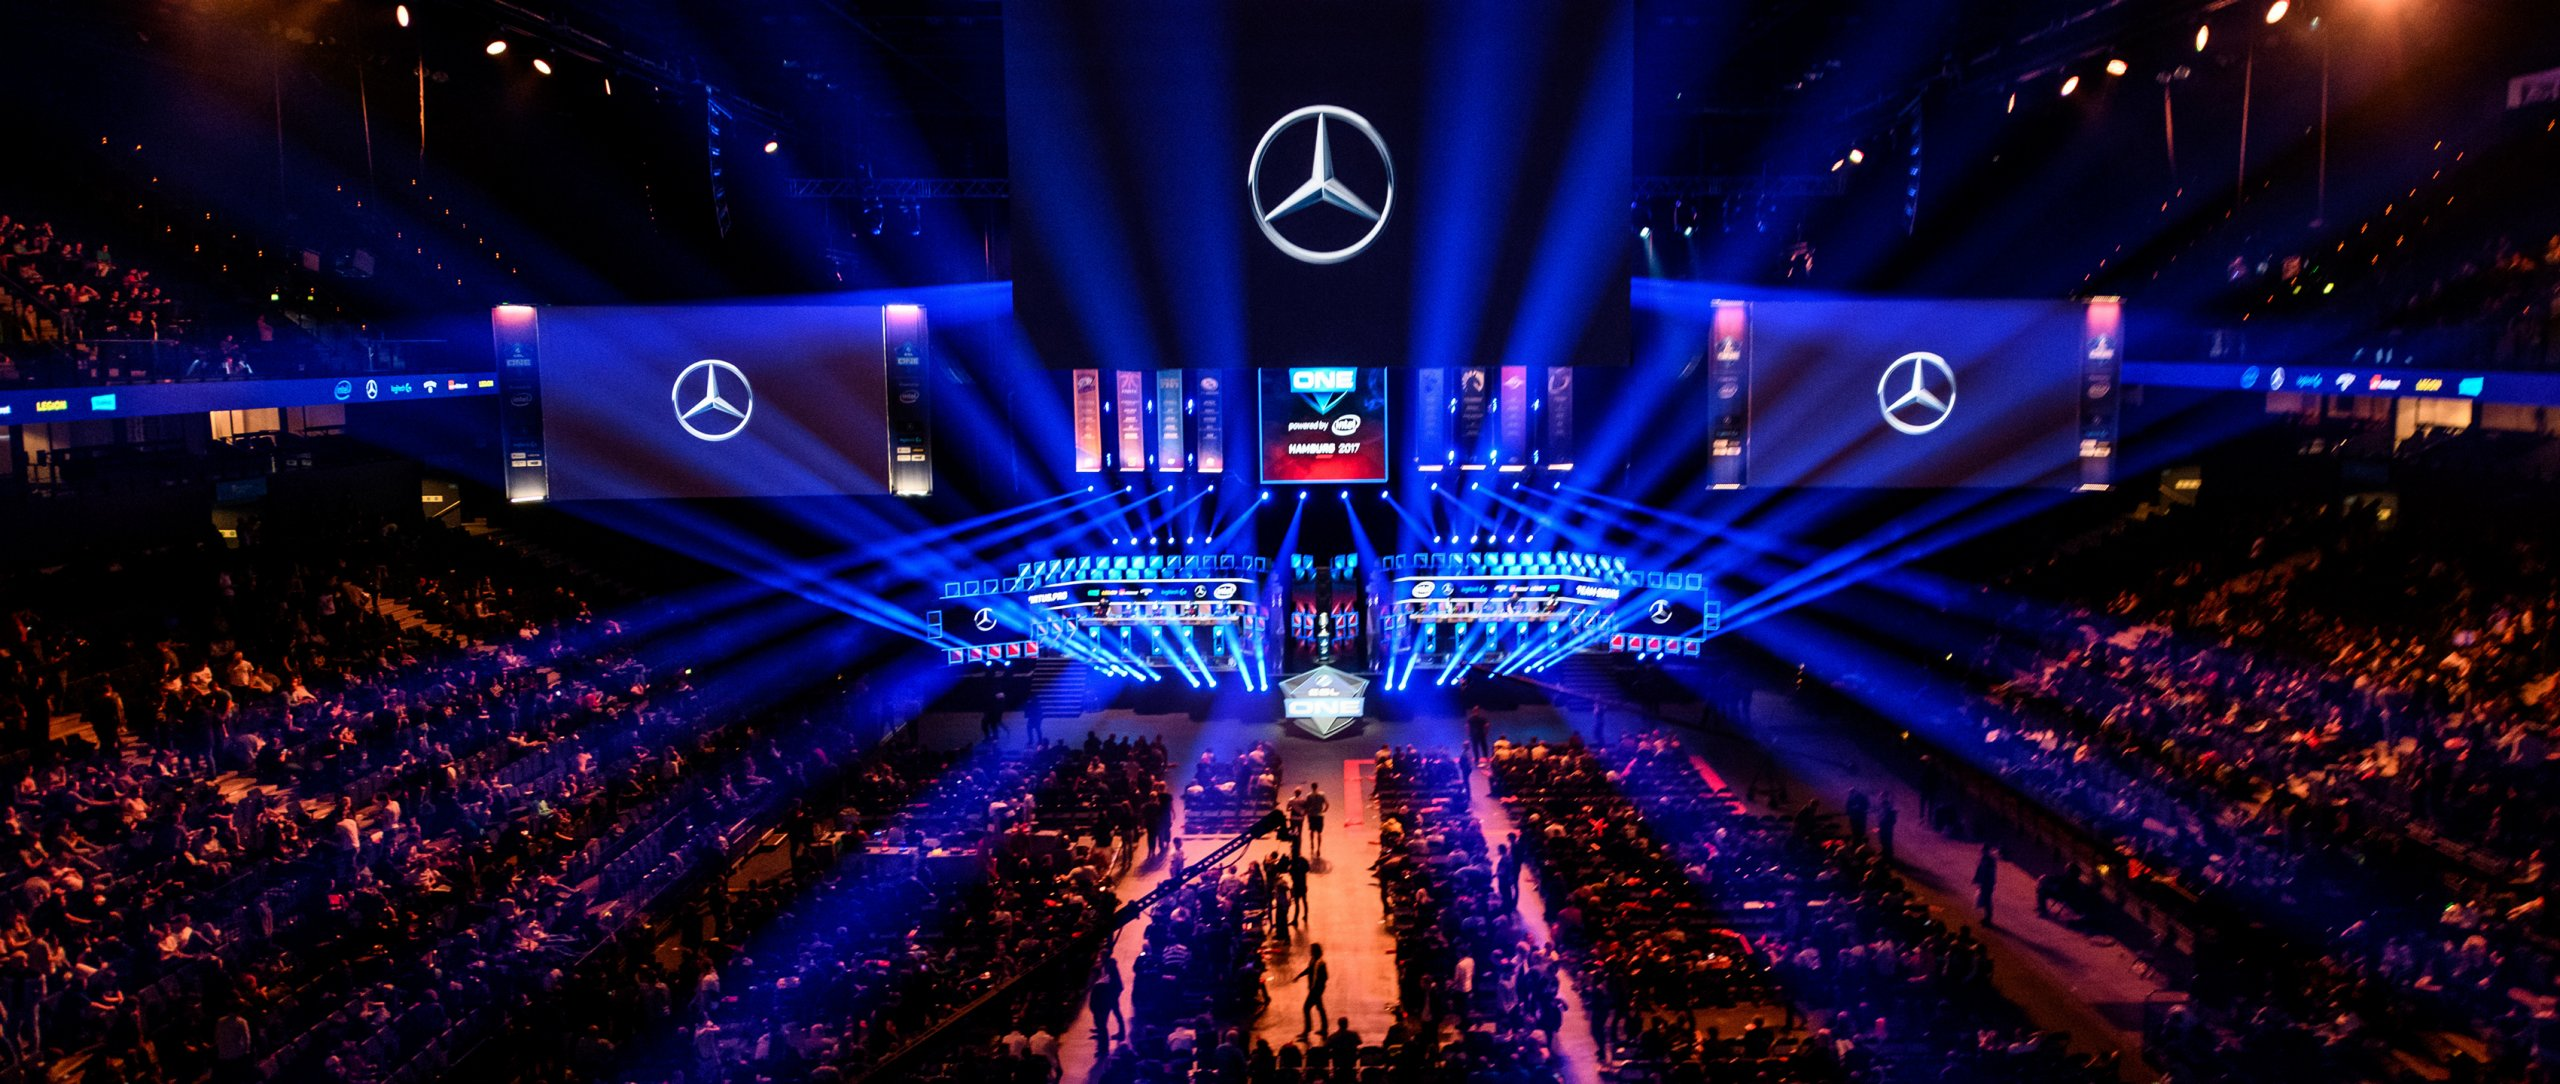 eSports competition held in an arena full of fans.